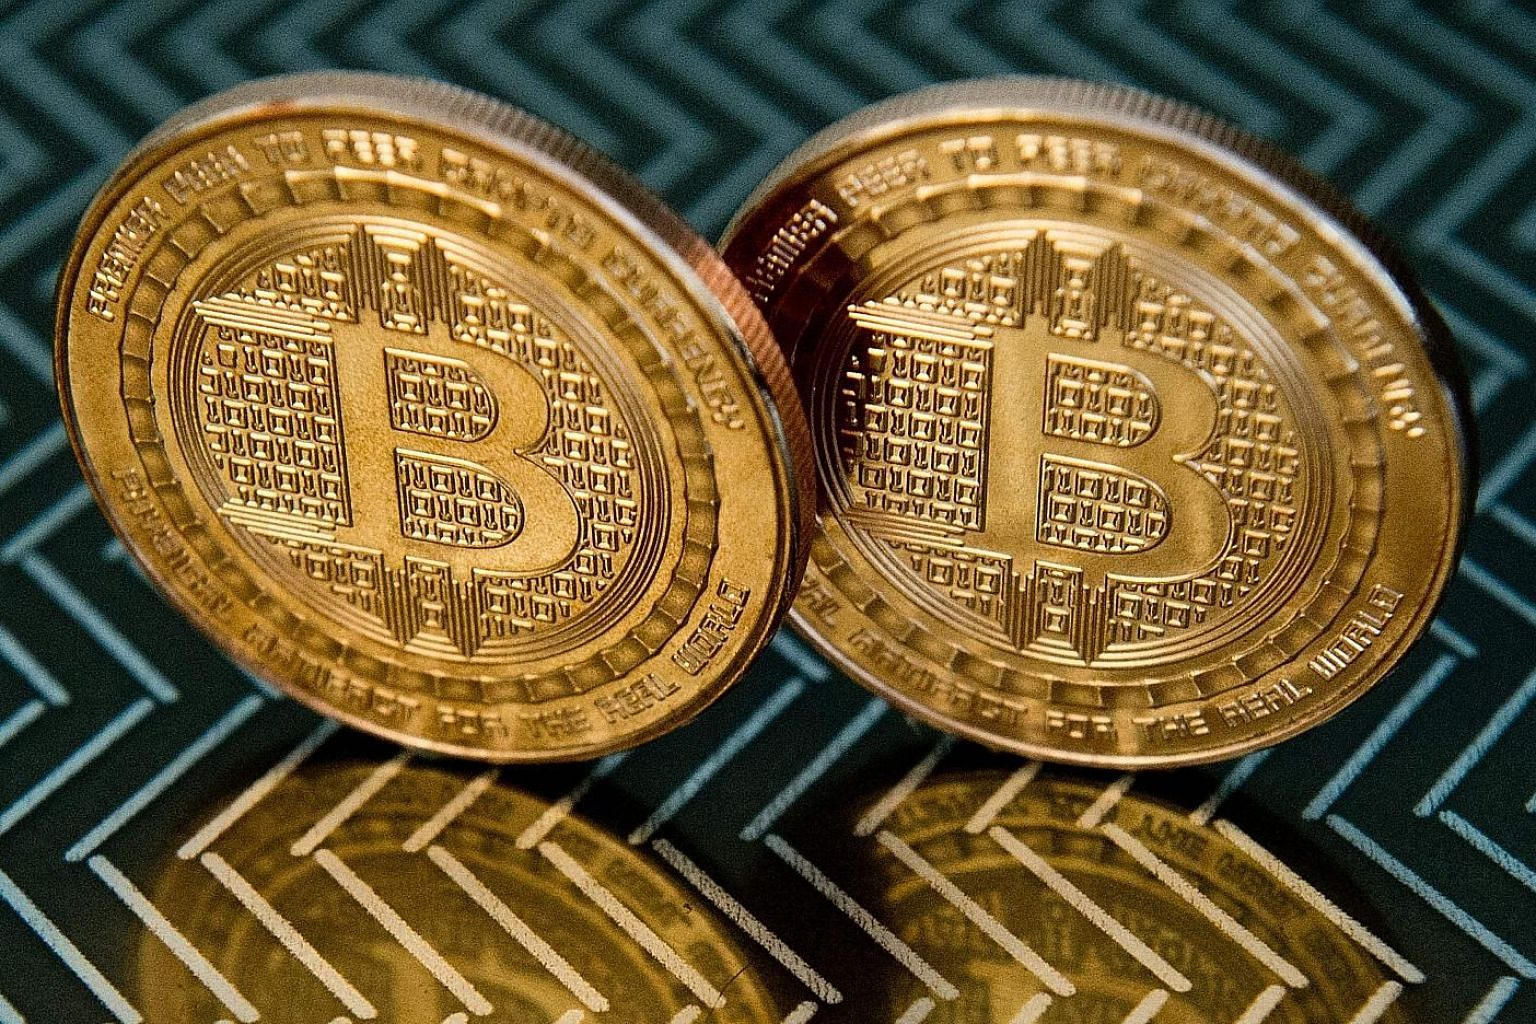 The Payment Services Act is the first comprehensive regulation for companies handling activities ranging from digital payments to trading of tokens such as bitcoin and Ether. PHOTO: AGENCE FRANCE-PRESSE